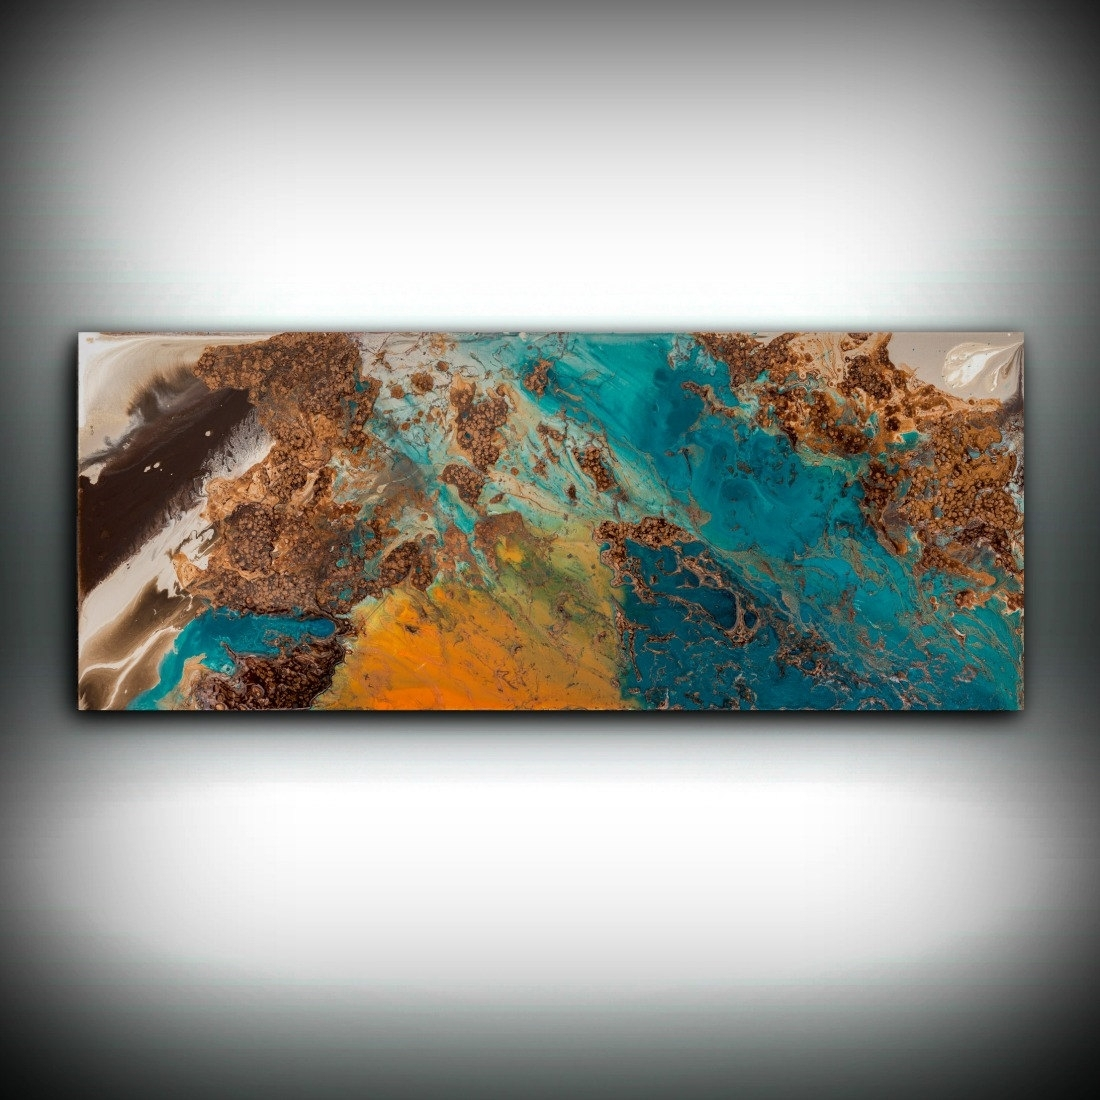 Sale Blue And Copper Art, Wall Art Prints Fine Art Prints Abstract Regarding Most Current Framed Fine Art Prints (View 10 of 15)